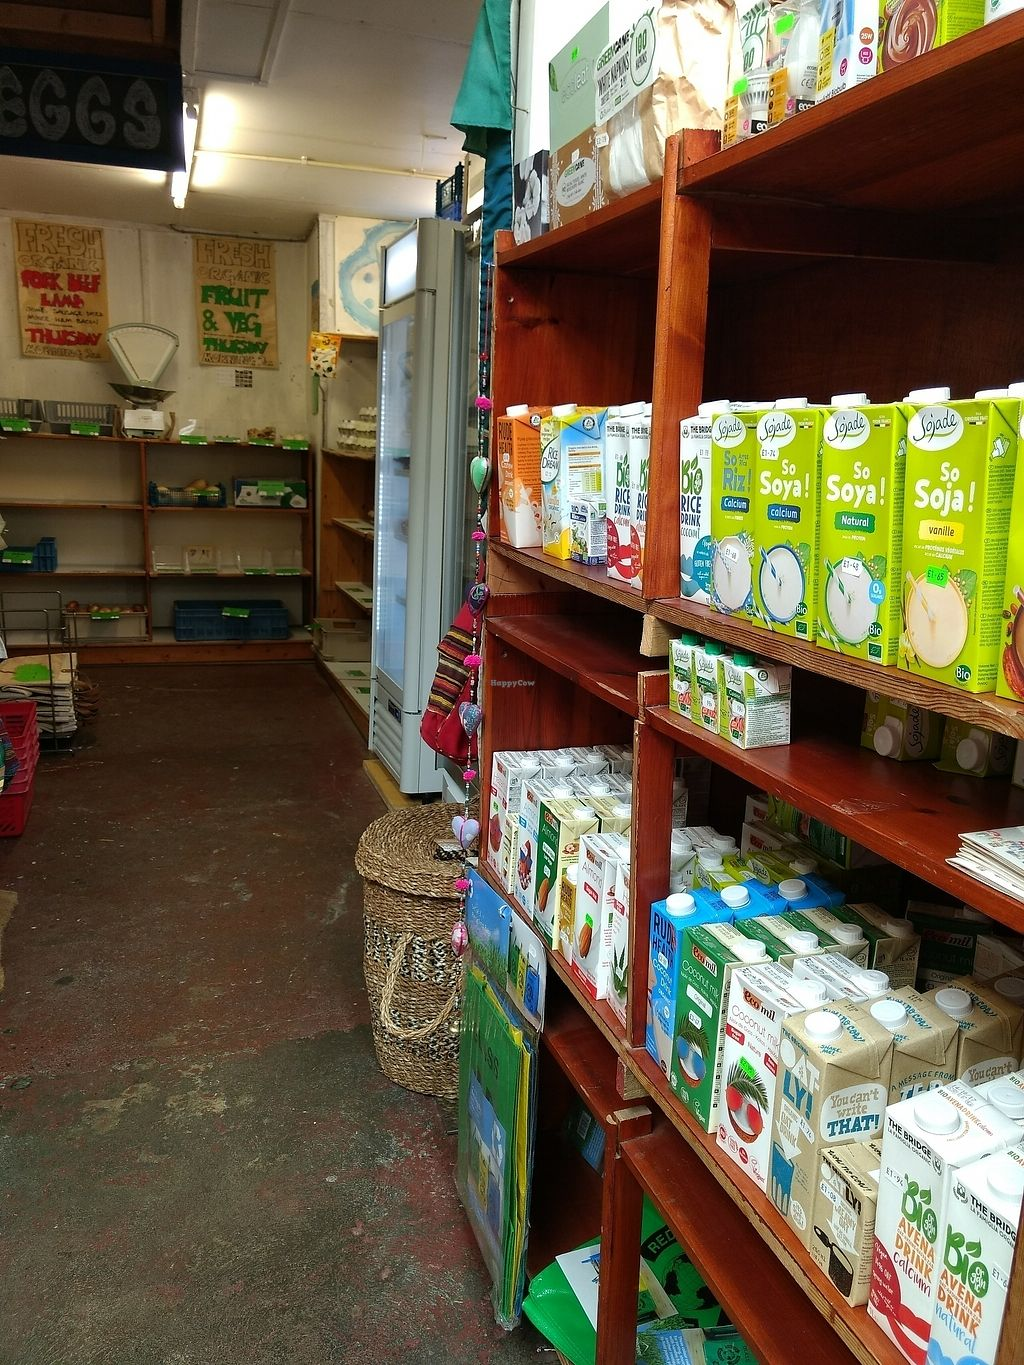 """Photo of The Green Shop  by <a href=""""/members/profile/craigmc"""">craigmc</a> <br/>can i still call it milk <br/> July 26, 2017  - <a href='/contact/abuse/image/21682/285175'>Report</a>"""